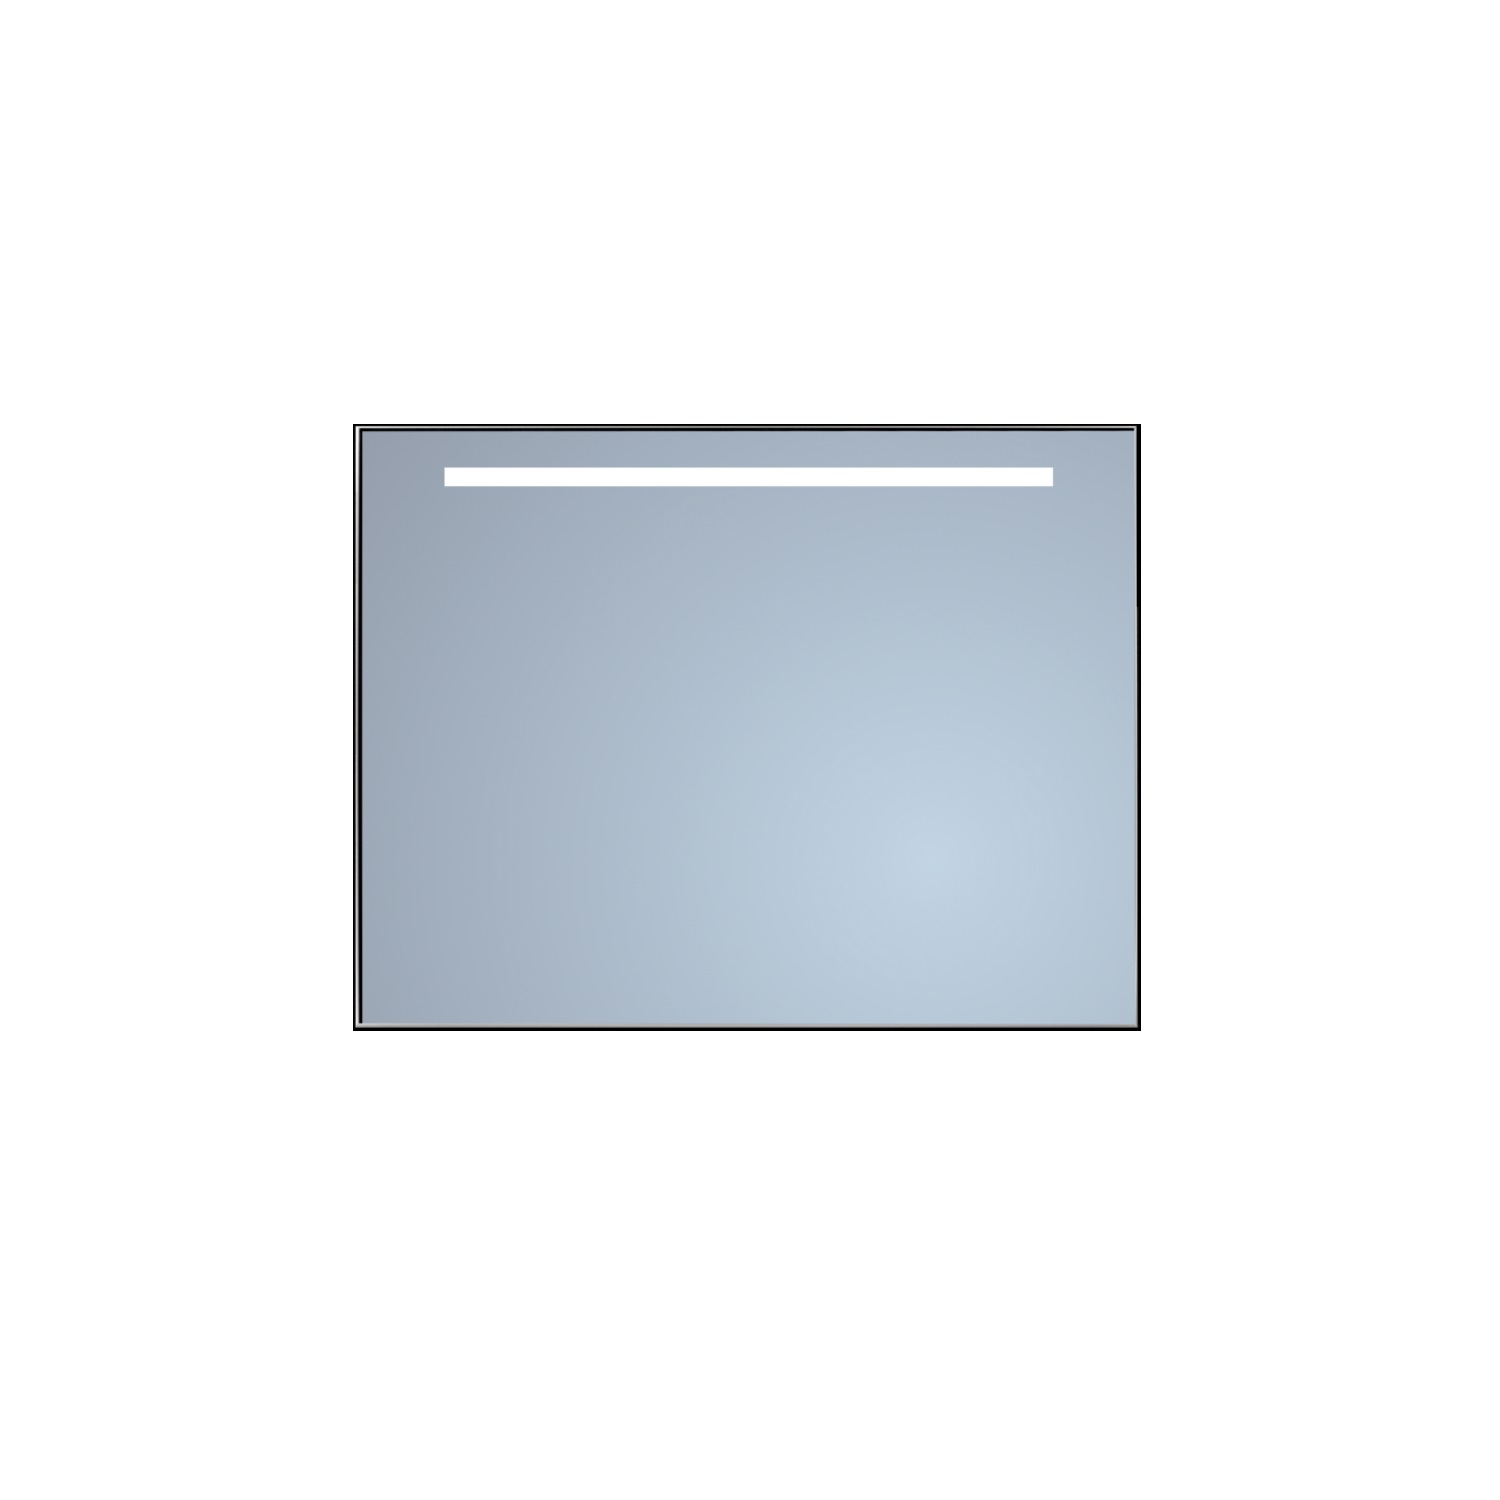 Badkamerspiegel Sanicare Q-Mirrors 'Cool White' LED-Verlichting 70x70x3,5 cm Chroom Omlijsting